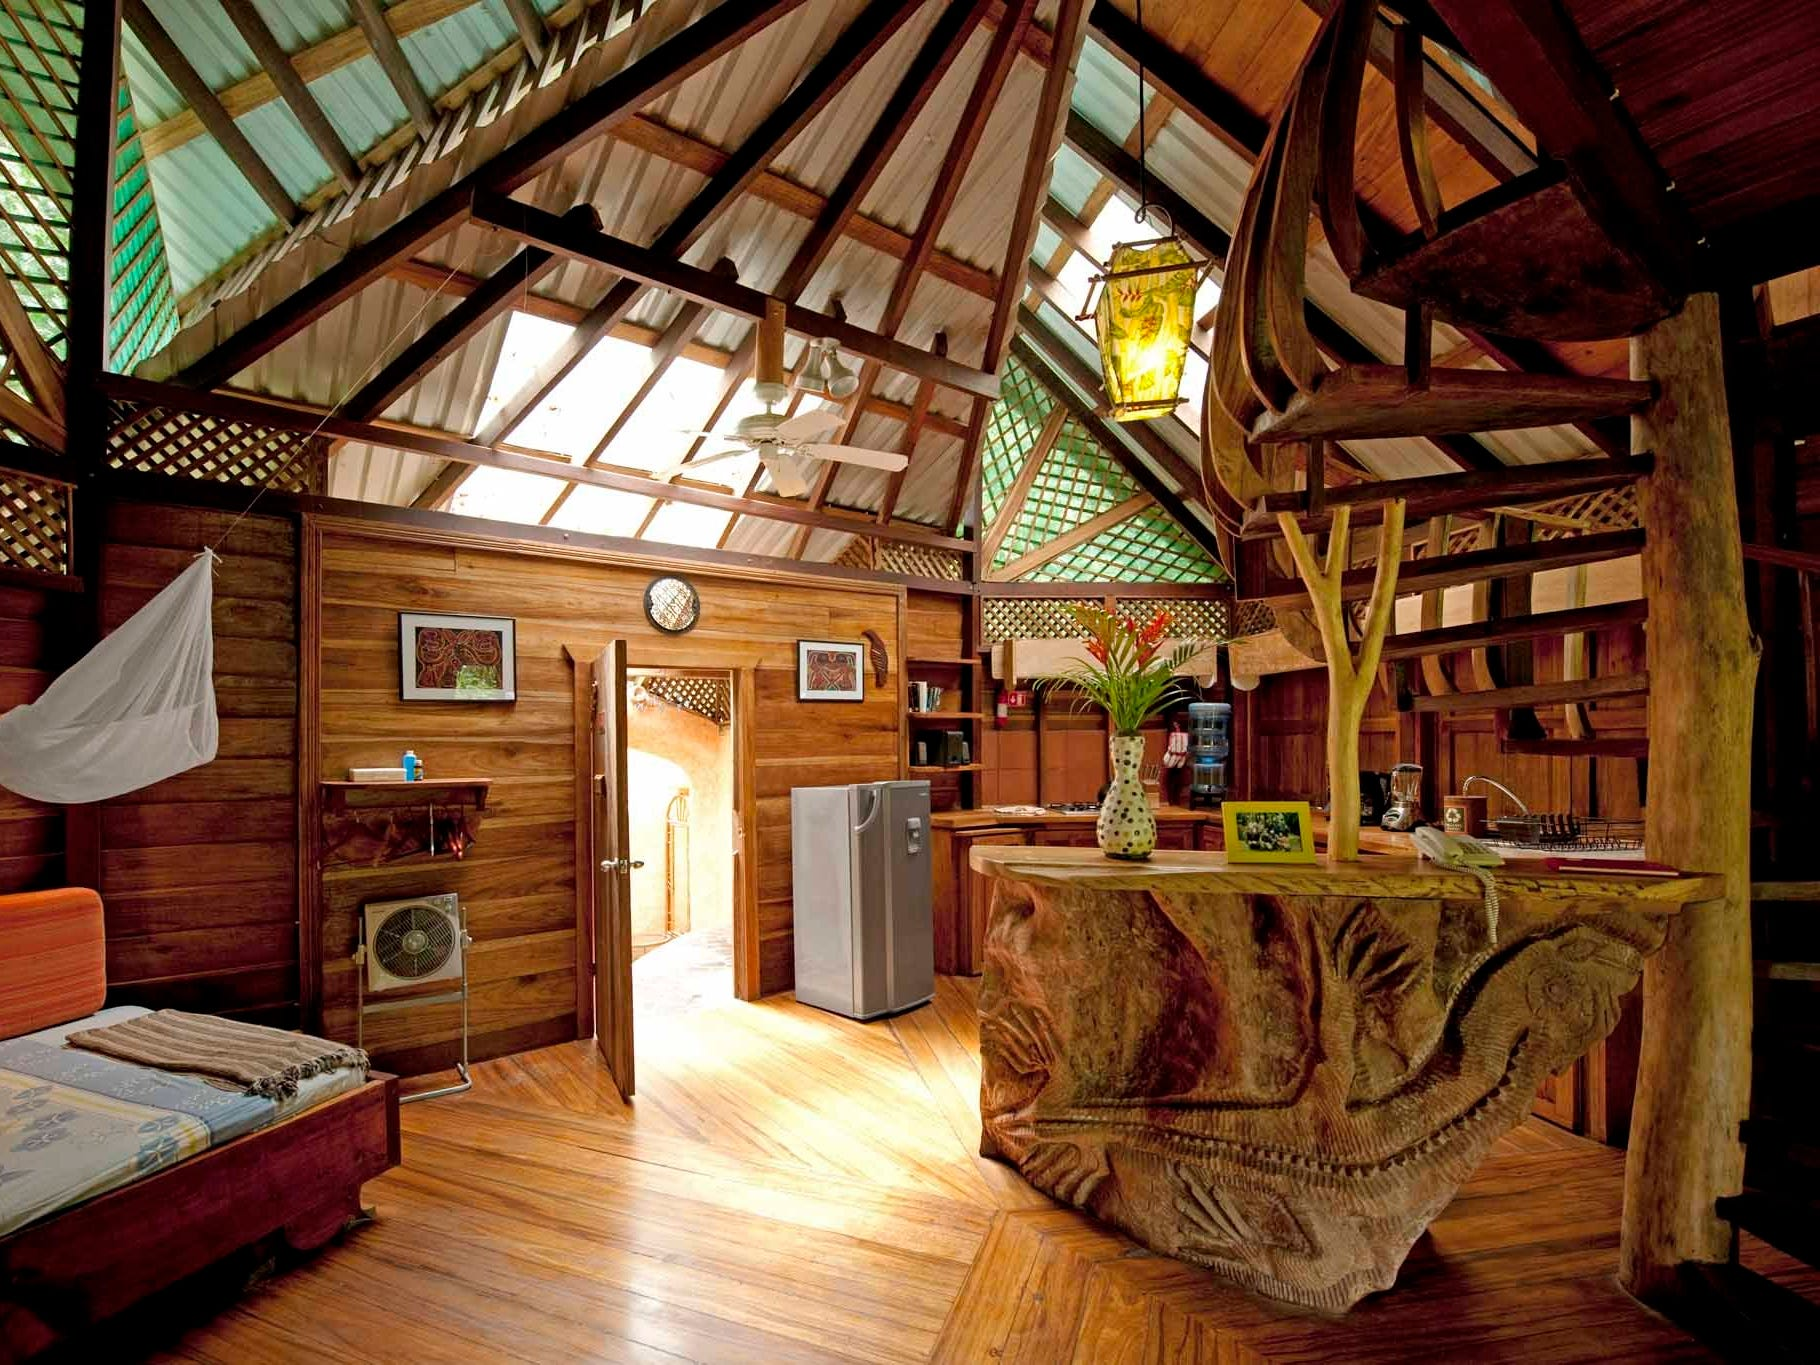 There's a great variety among the eco-lodges of Costa Rica. Some are luxurious and offer fine dining, while others will be on the rustic side with facilities to prepare your own meals.